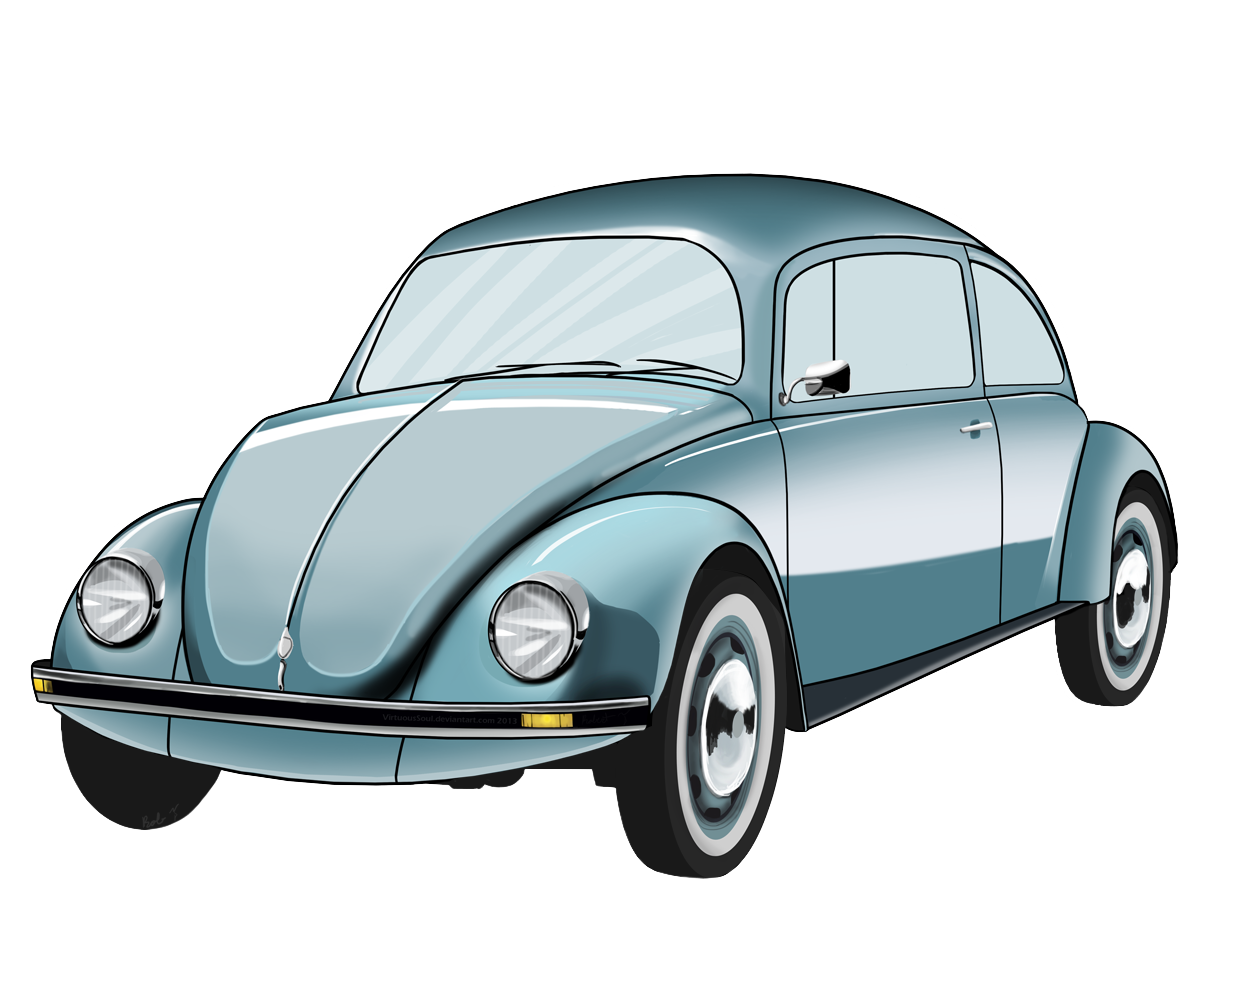 vw beetle clipart clipart suggest. Black Bedroom Furniture Sets. Home Design Ideas